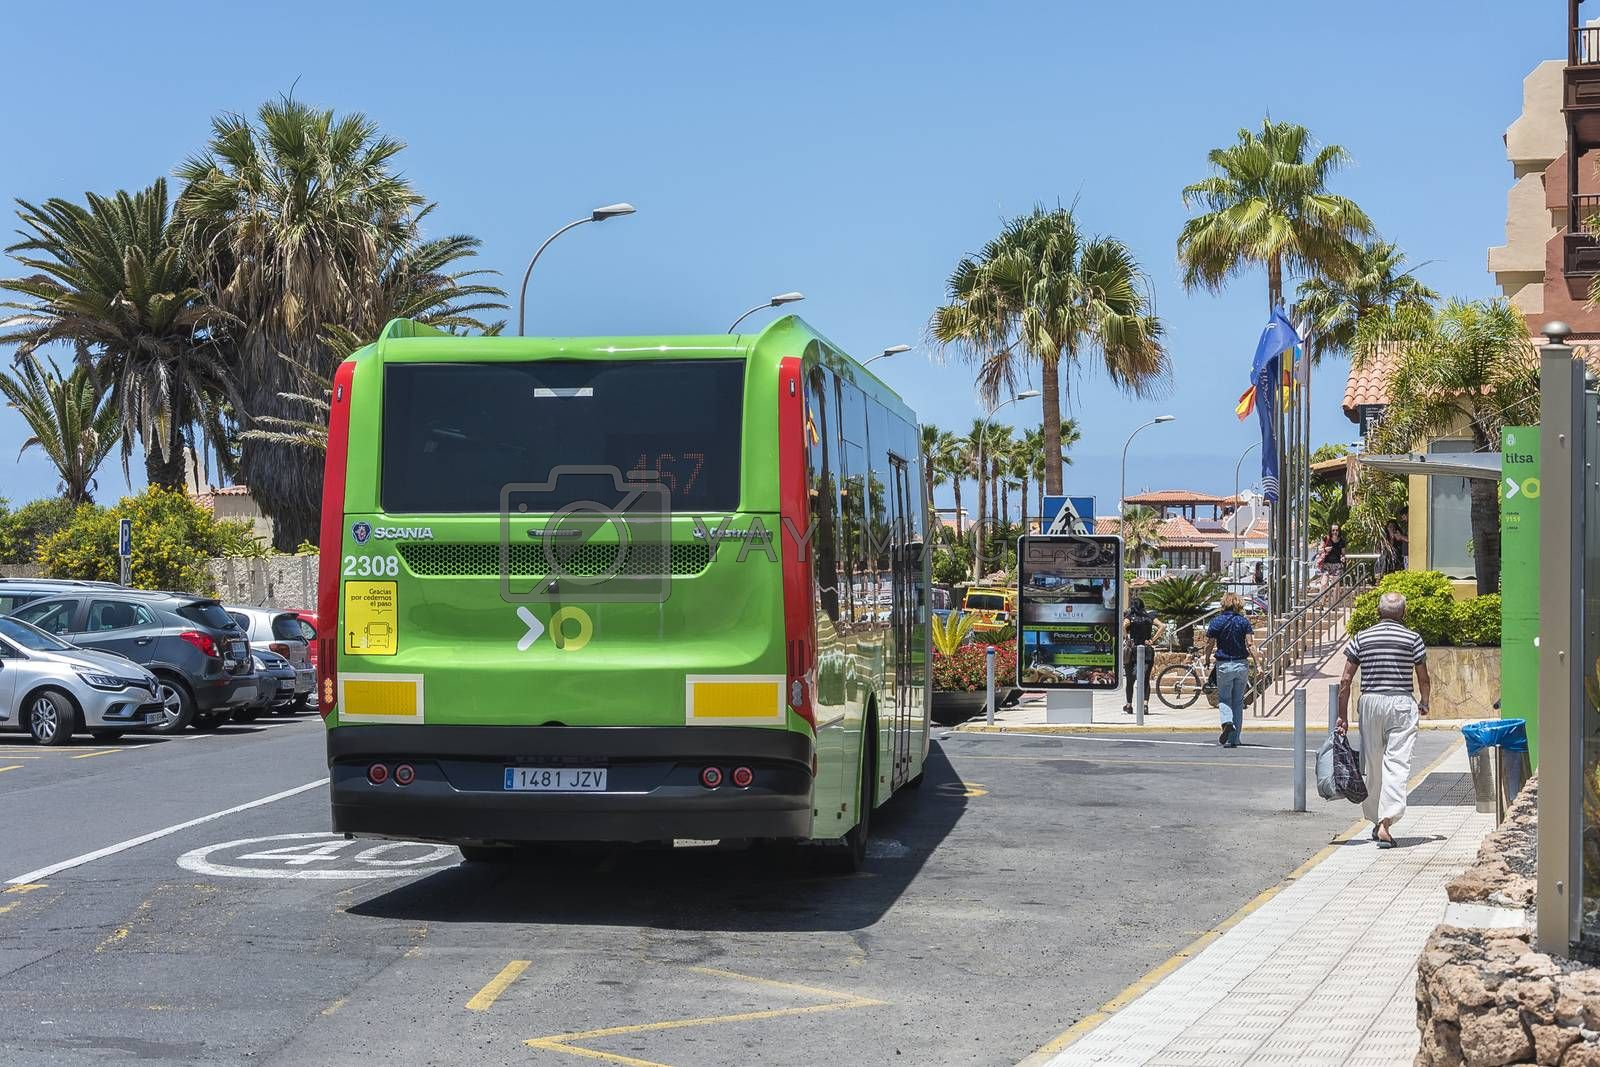 Spain, La Caleta - May 15, 2018: - Scheduled passenger bus Scania transport company TICA. Transport company TICA performs passenger transportation on the island of Tenerife.